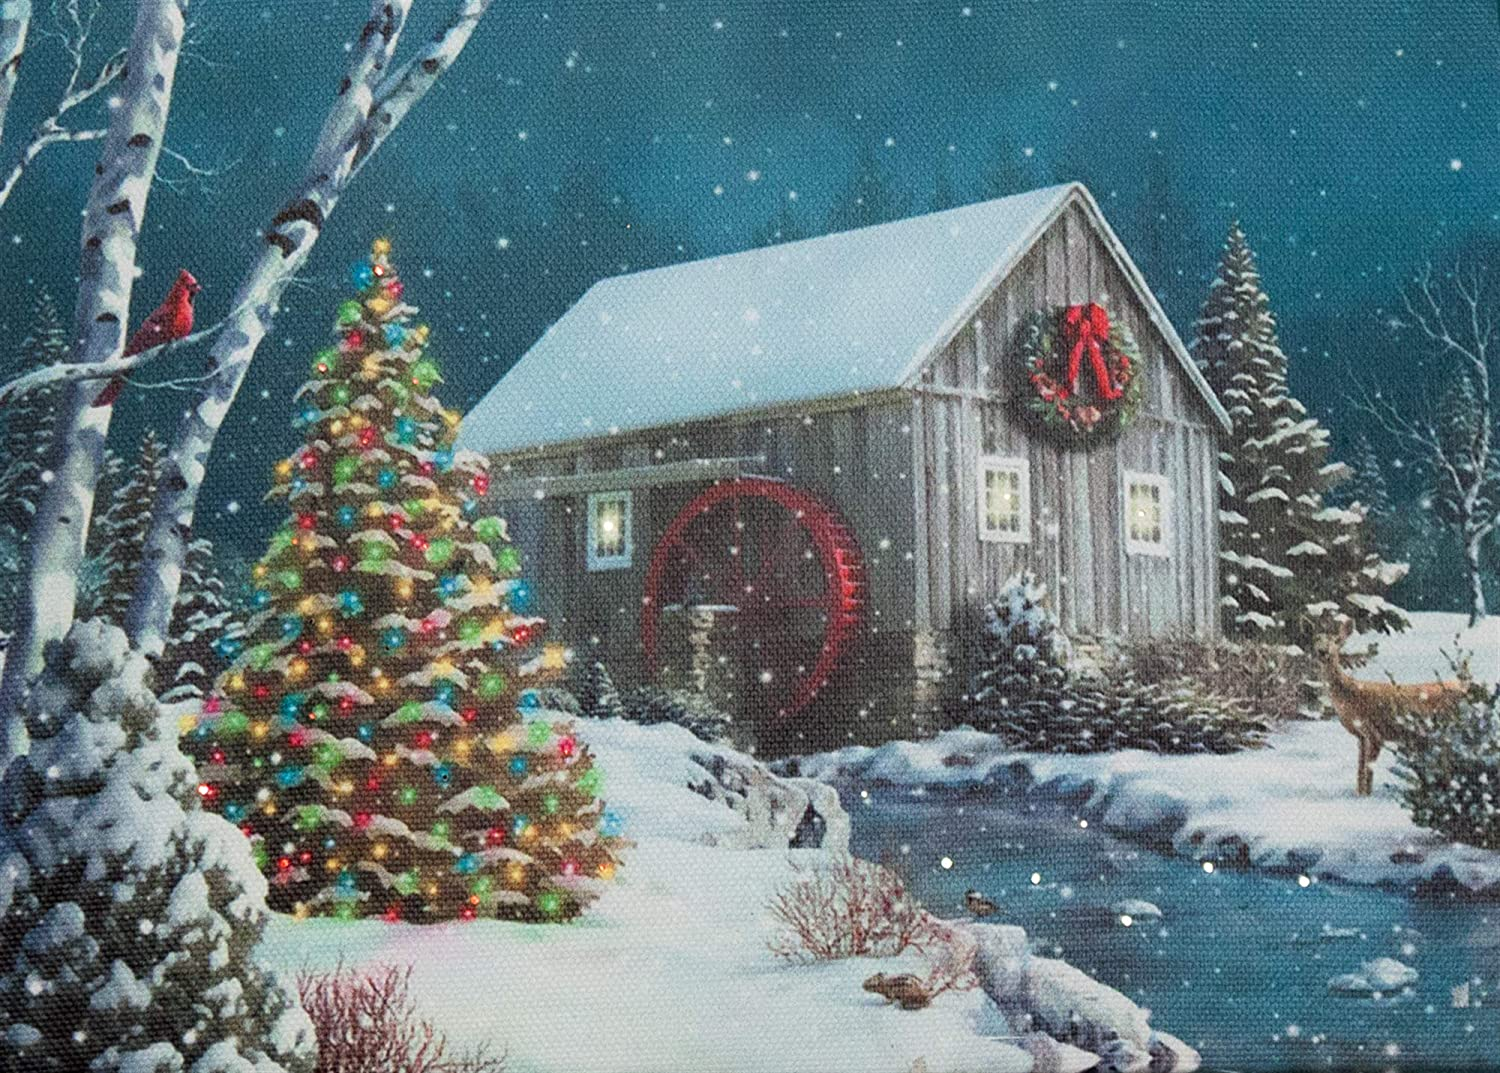 Amazon Com Oak Street Christmas Winter Scenes Led Art 8 X6 Tabletop Canvas Light Up Picture 6 Hour Timer 8 X6 Christmas Tree Water Mill River Osw152390 Posters Prints